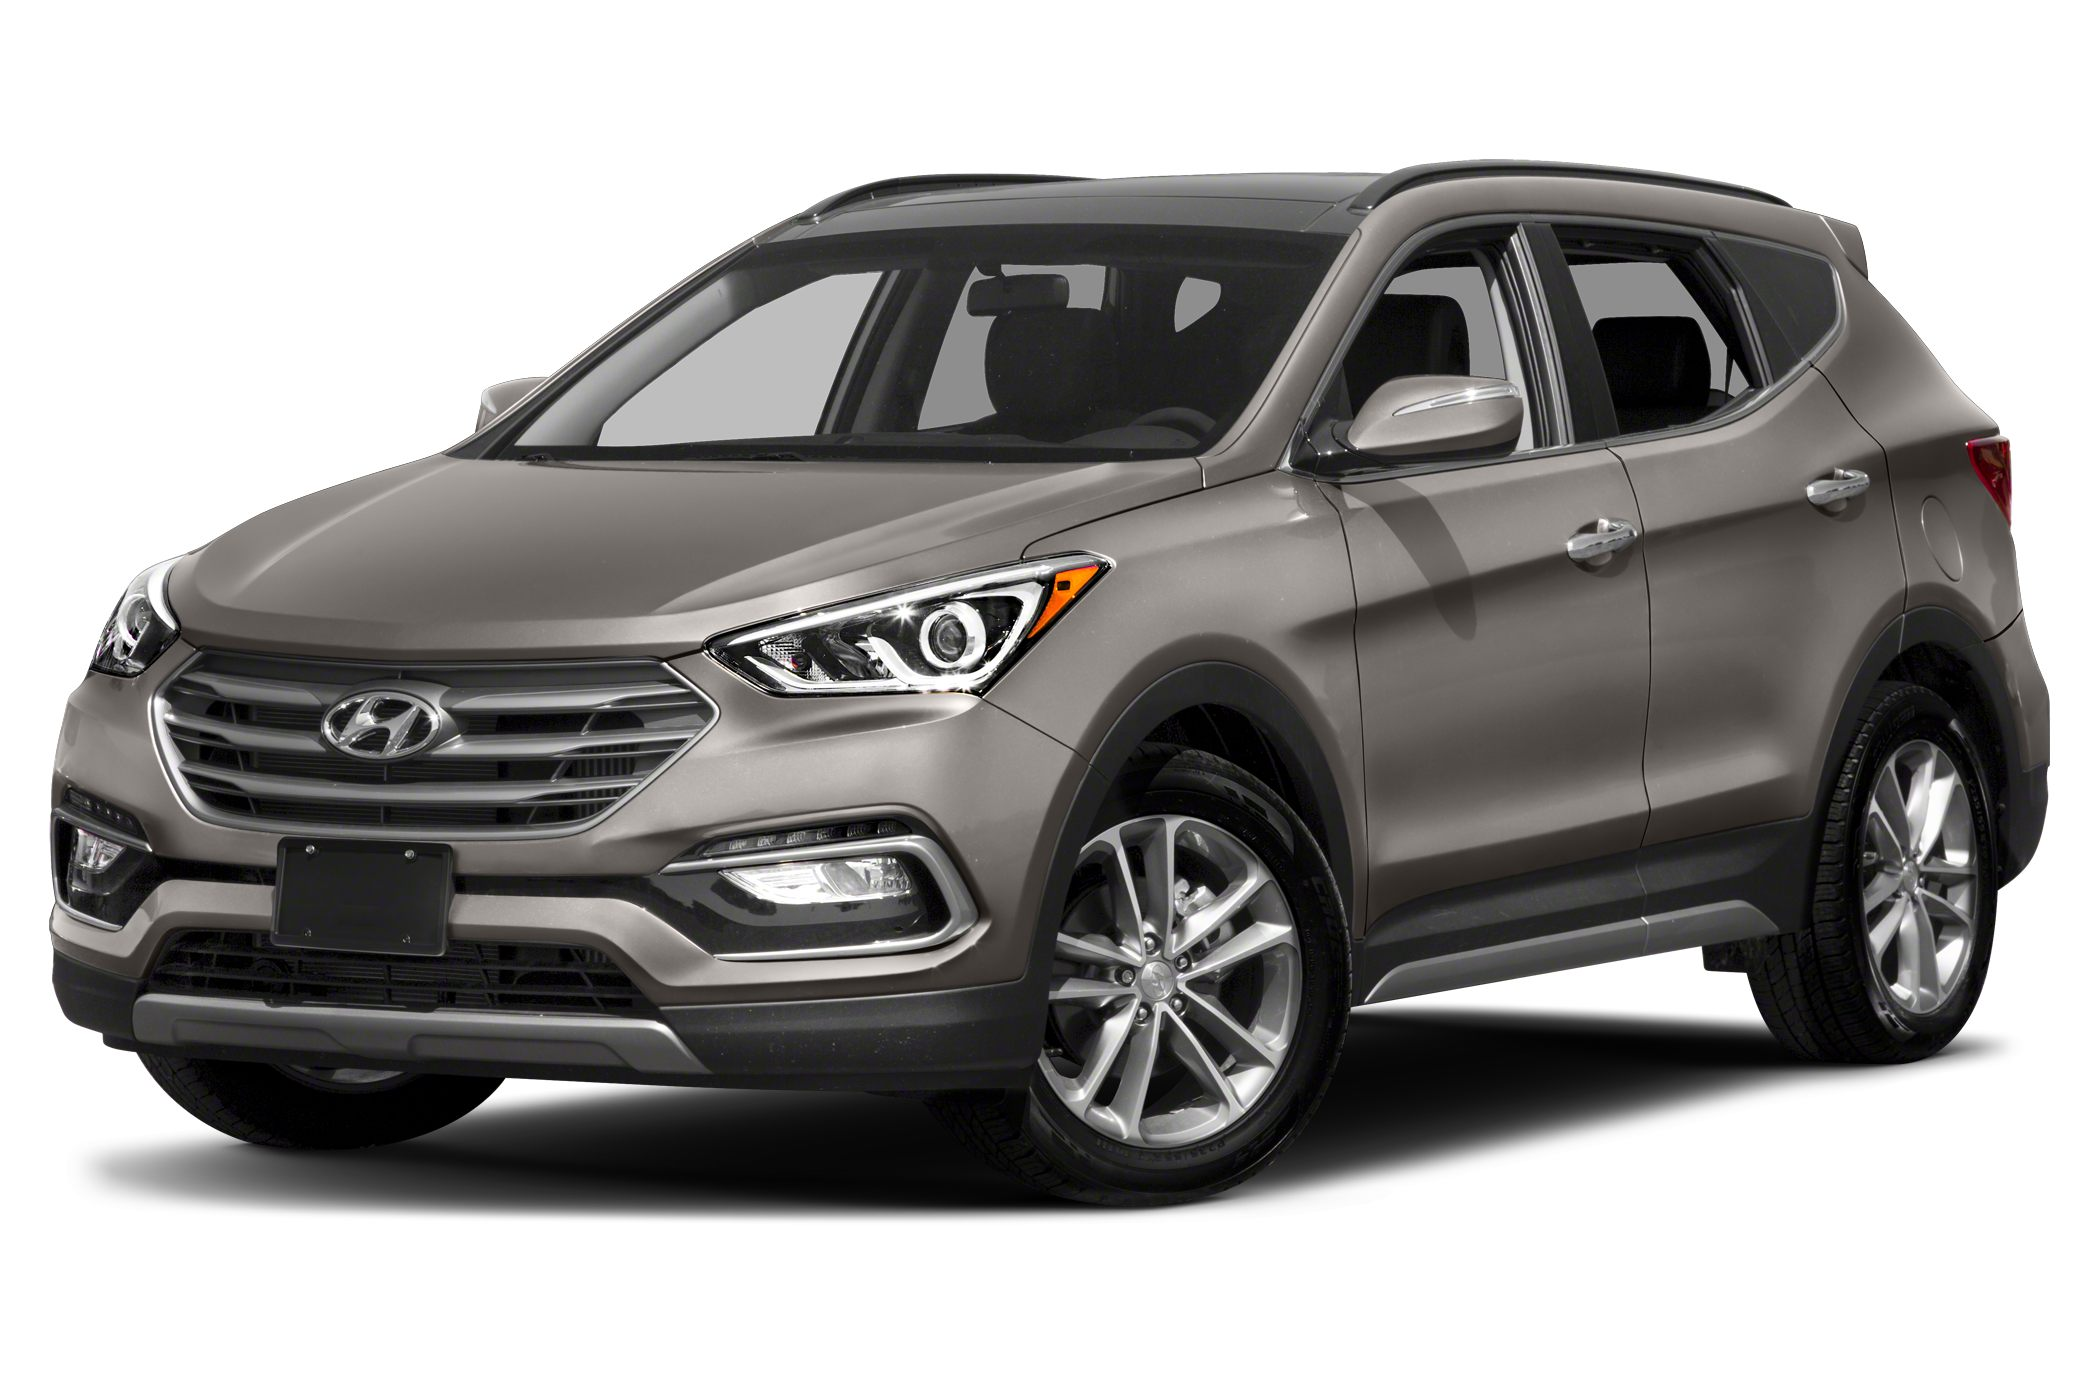 Hyundai Canada Incentives for the new 2017 Hyundai Santa Fe Sport Crossover SUV in Milton, Toronto, and the GTA